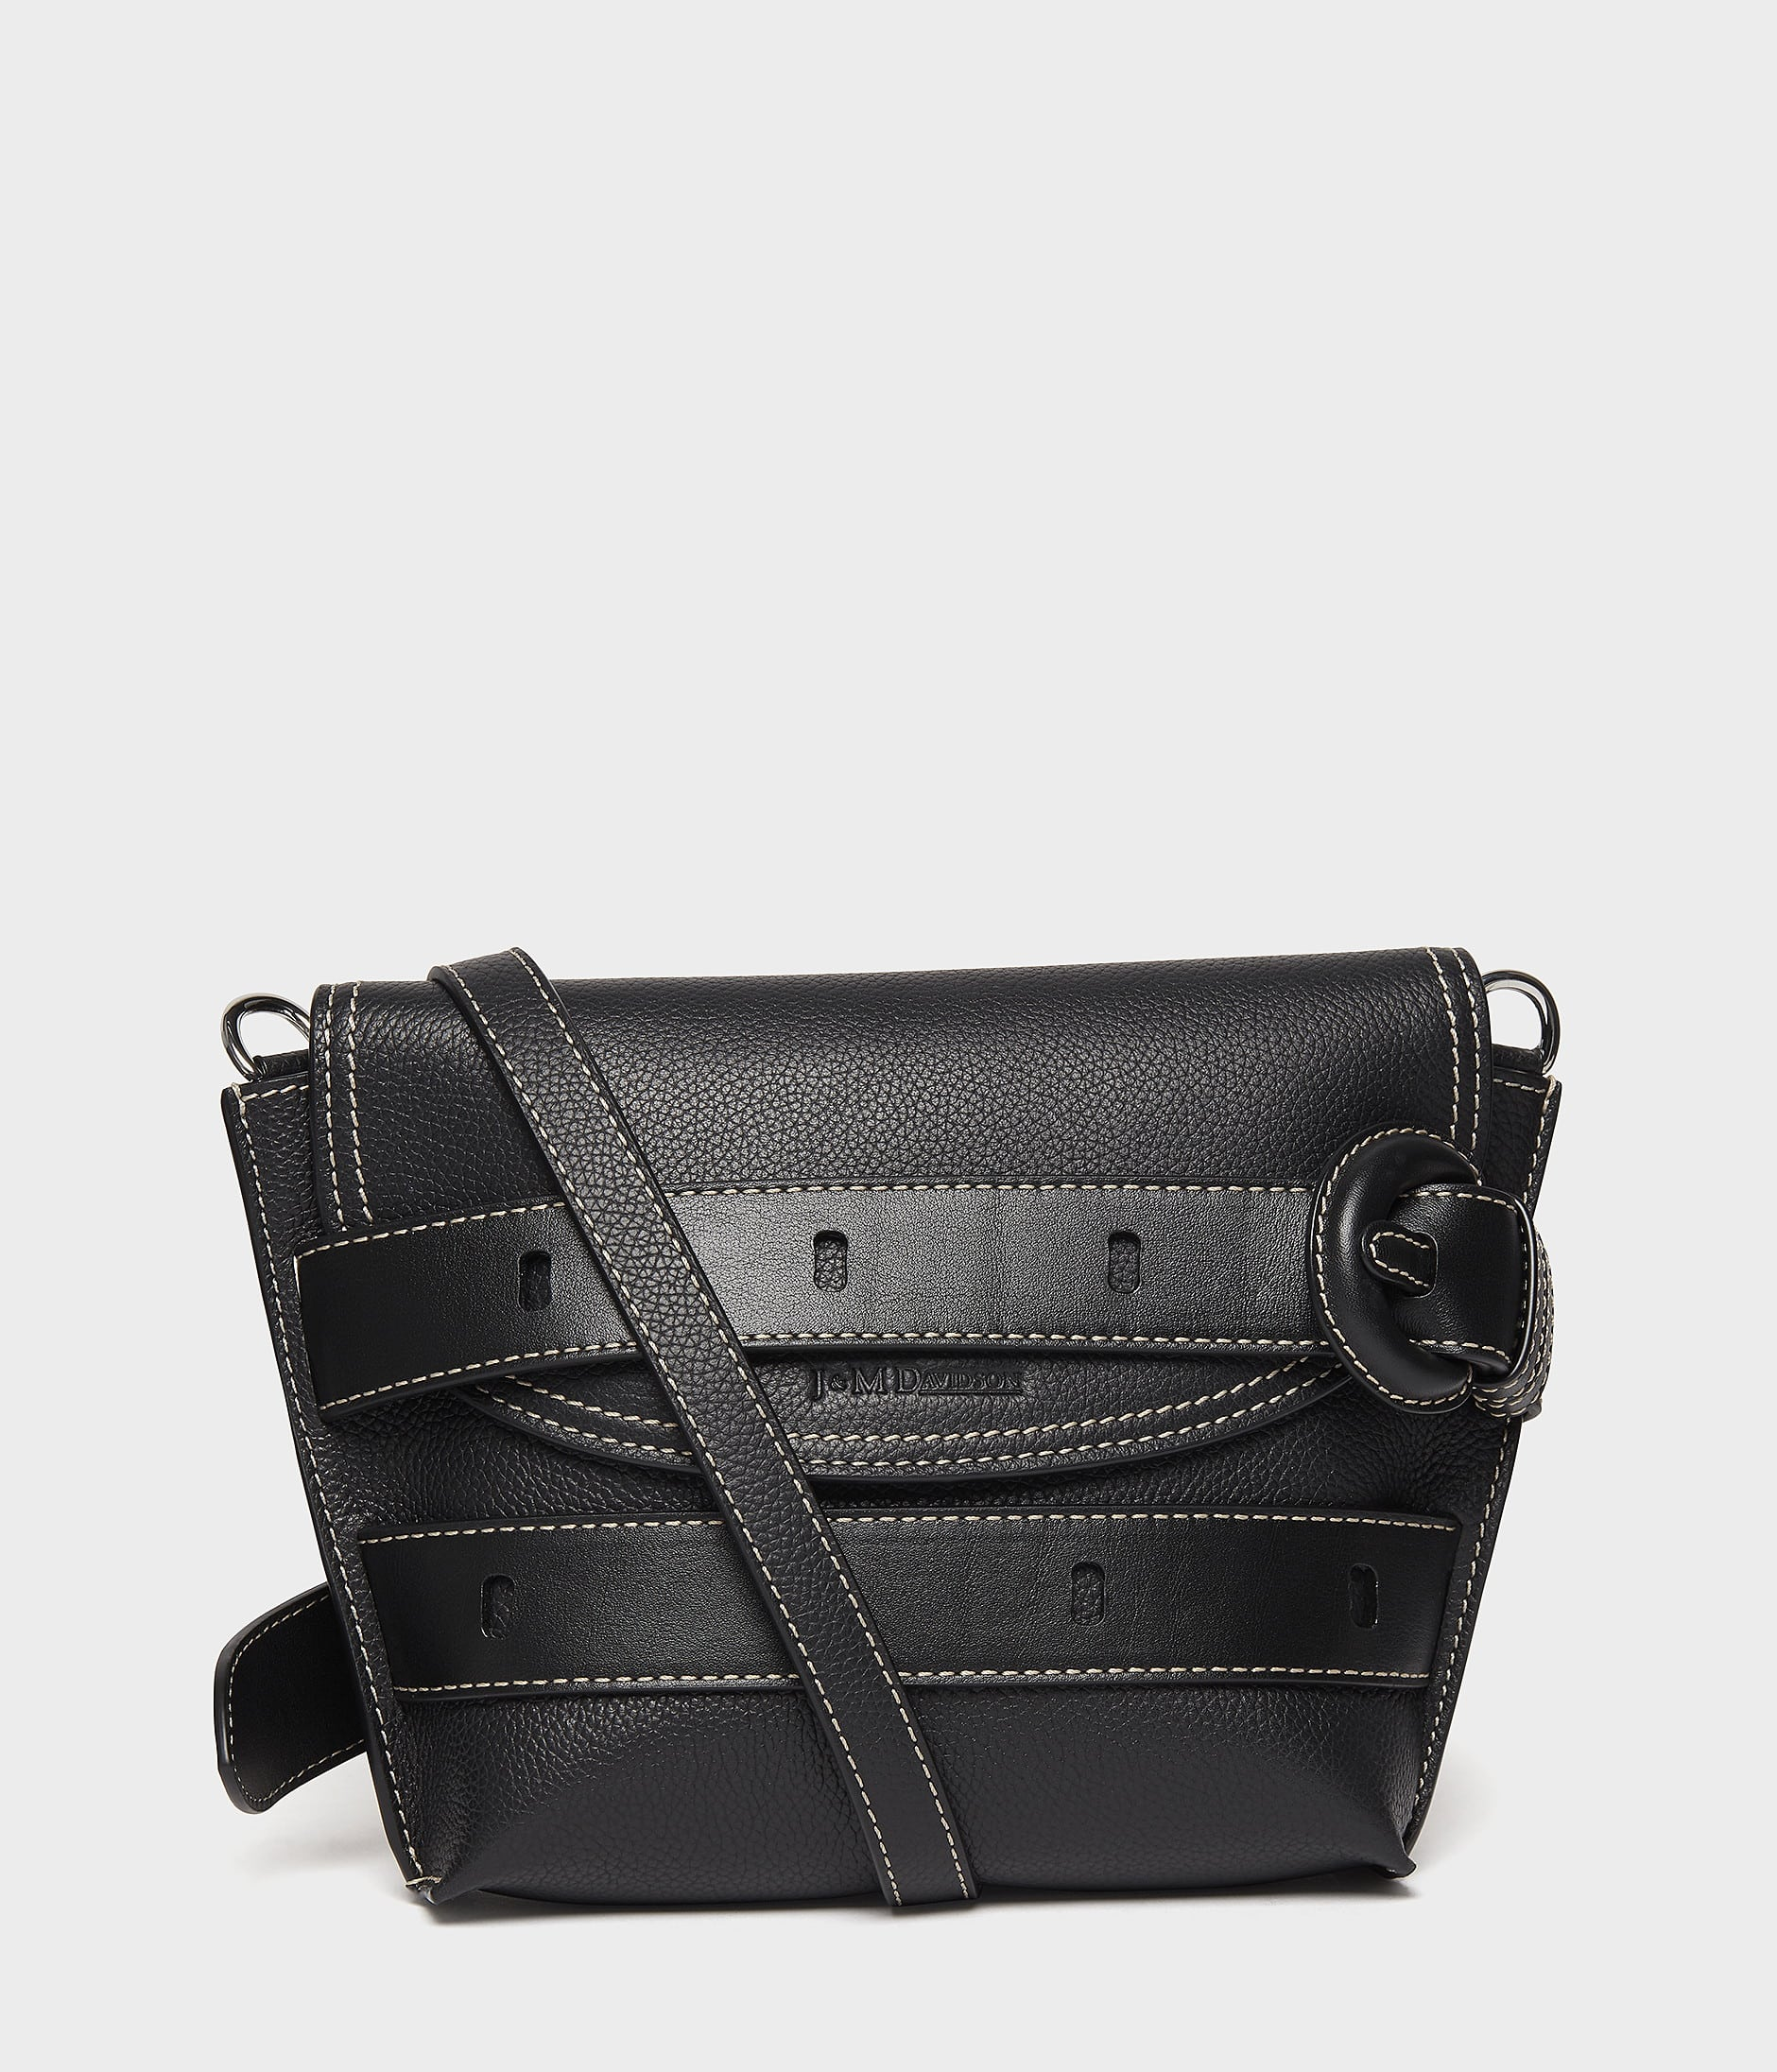 THE BELT POUCH 詳細画像 BLACK 2